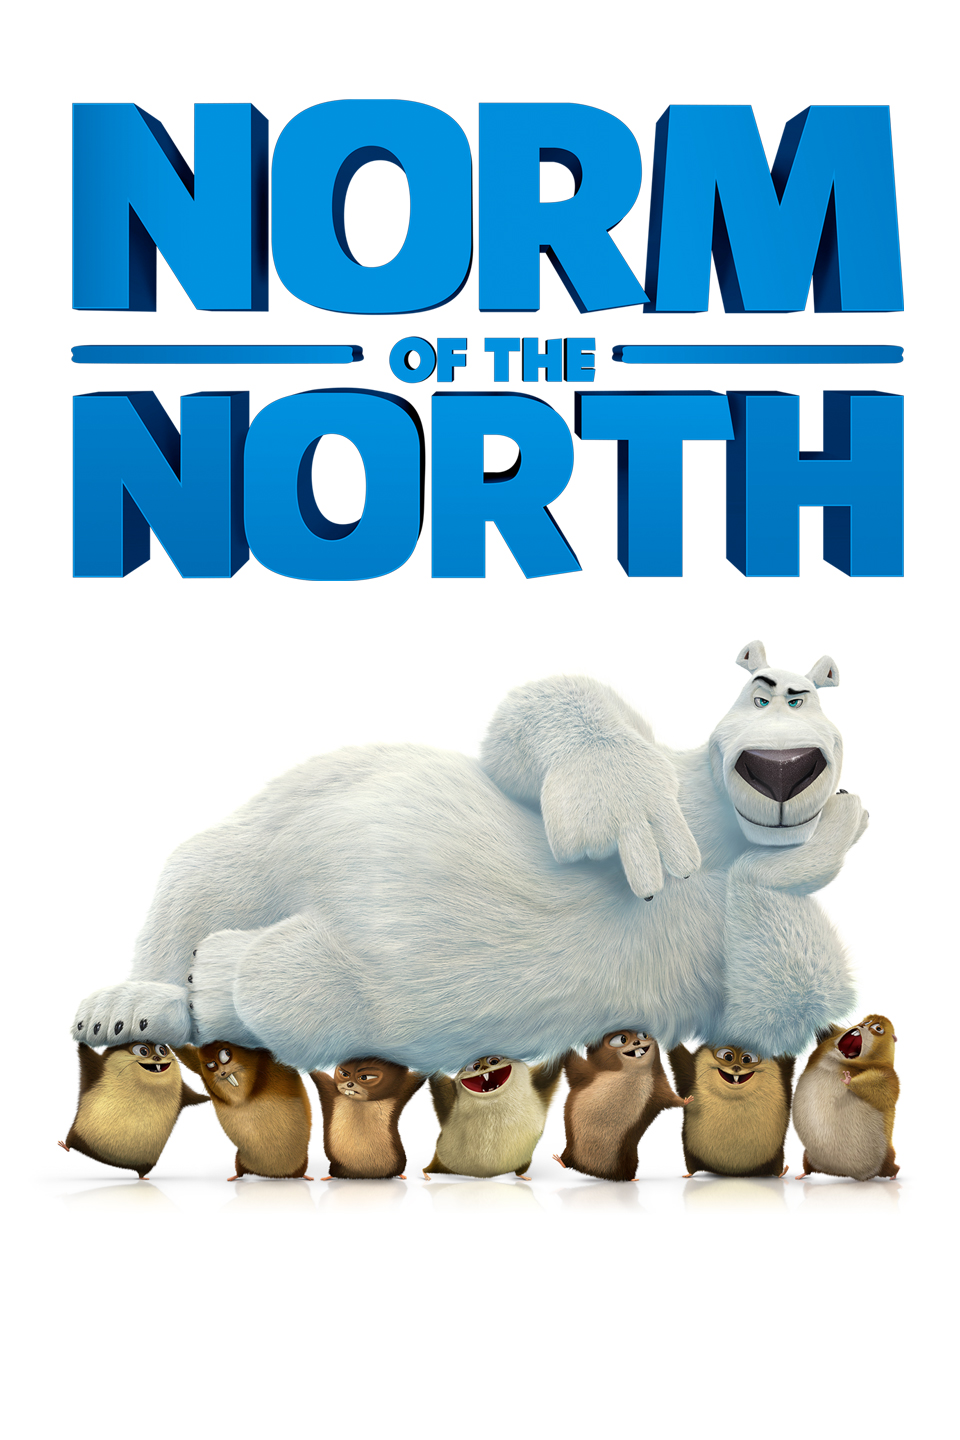 Norm-Of-The-North960x1440-Portrate